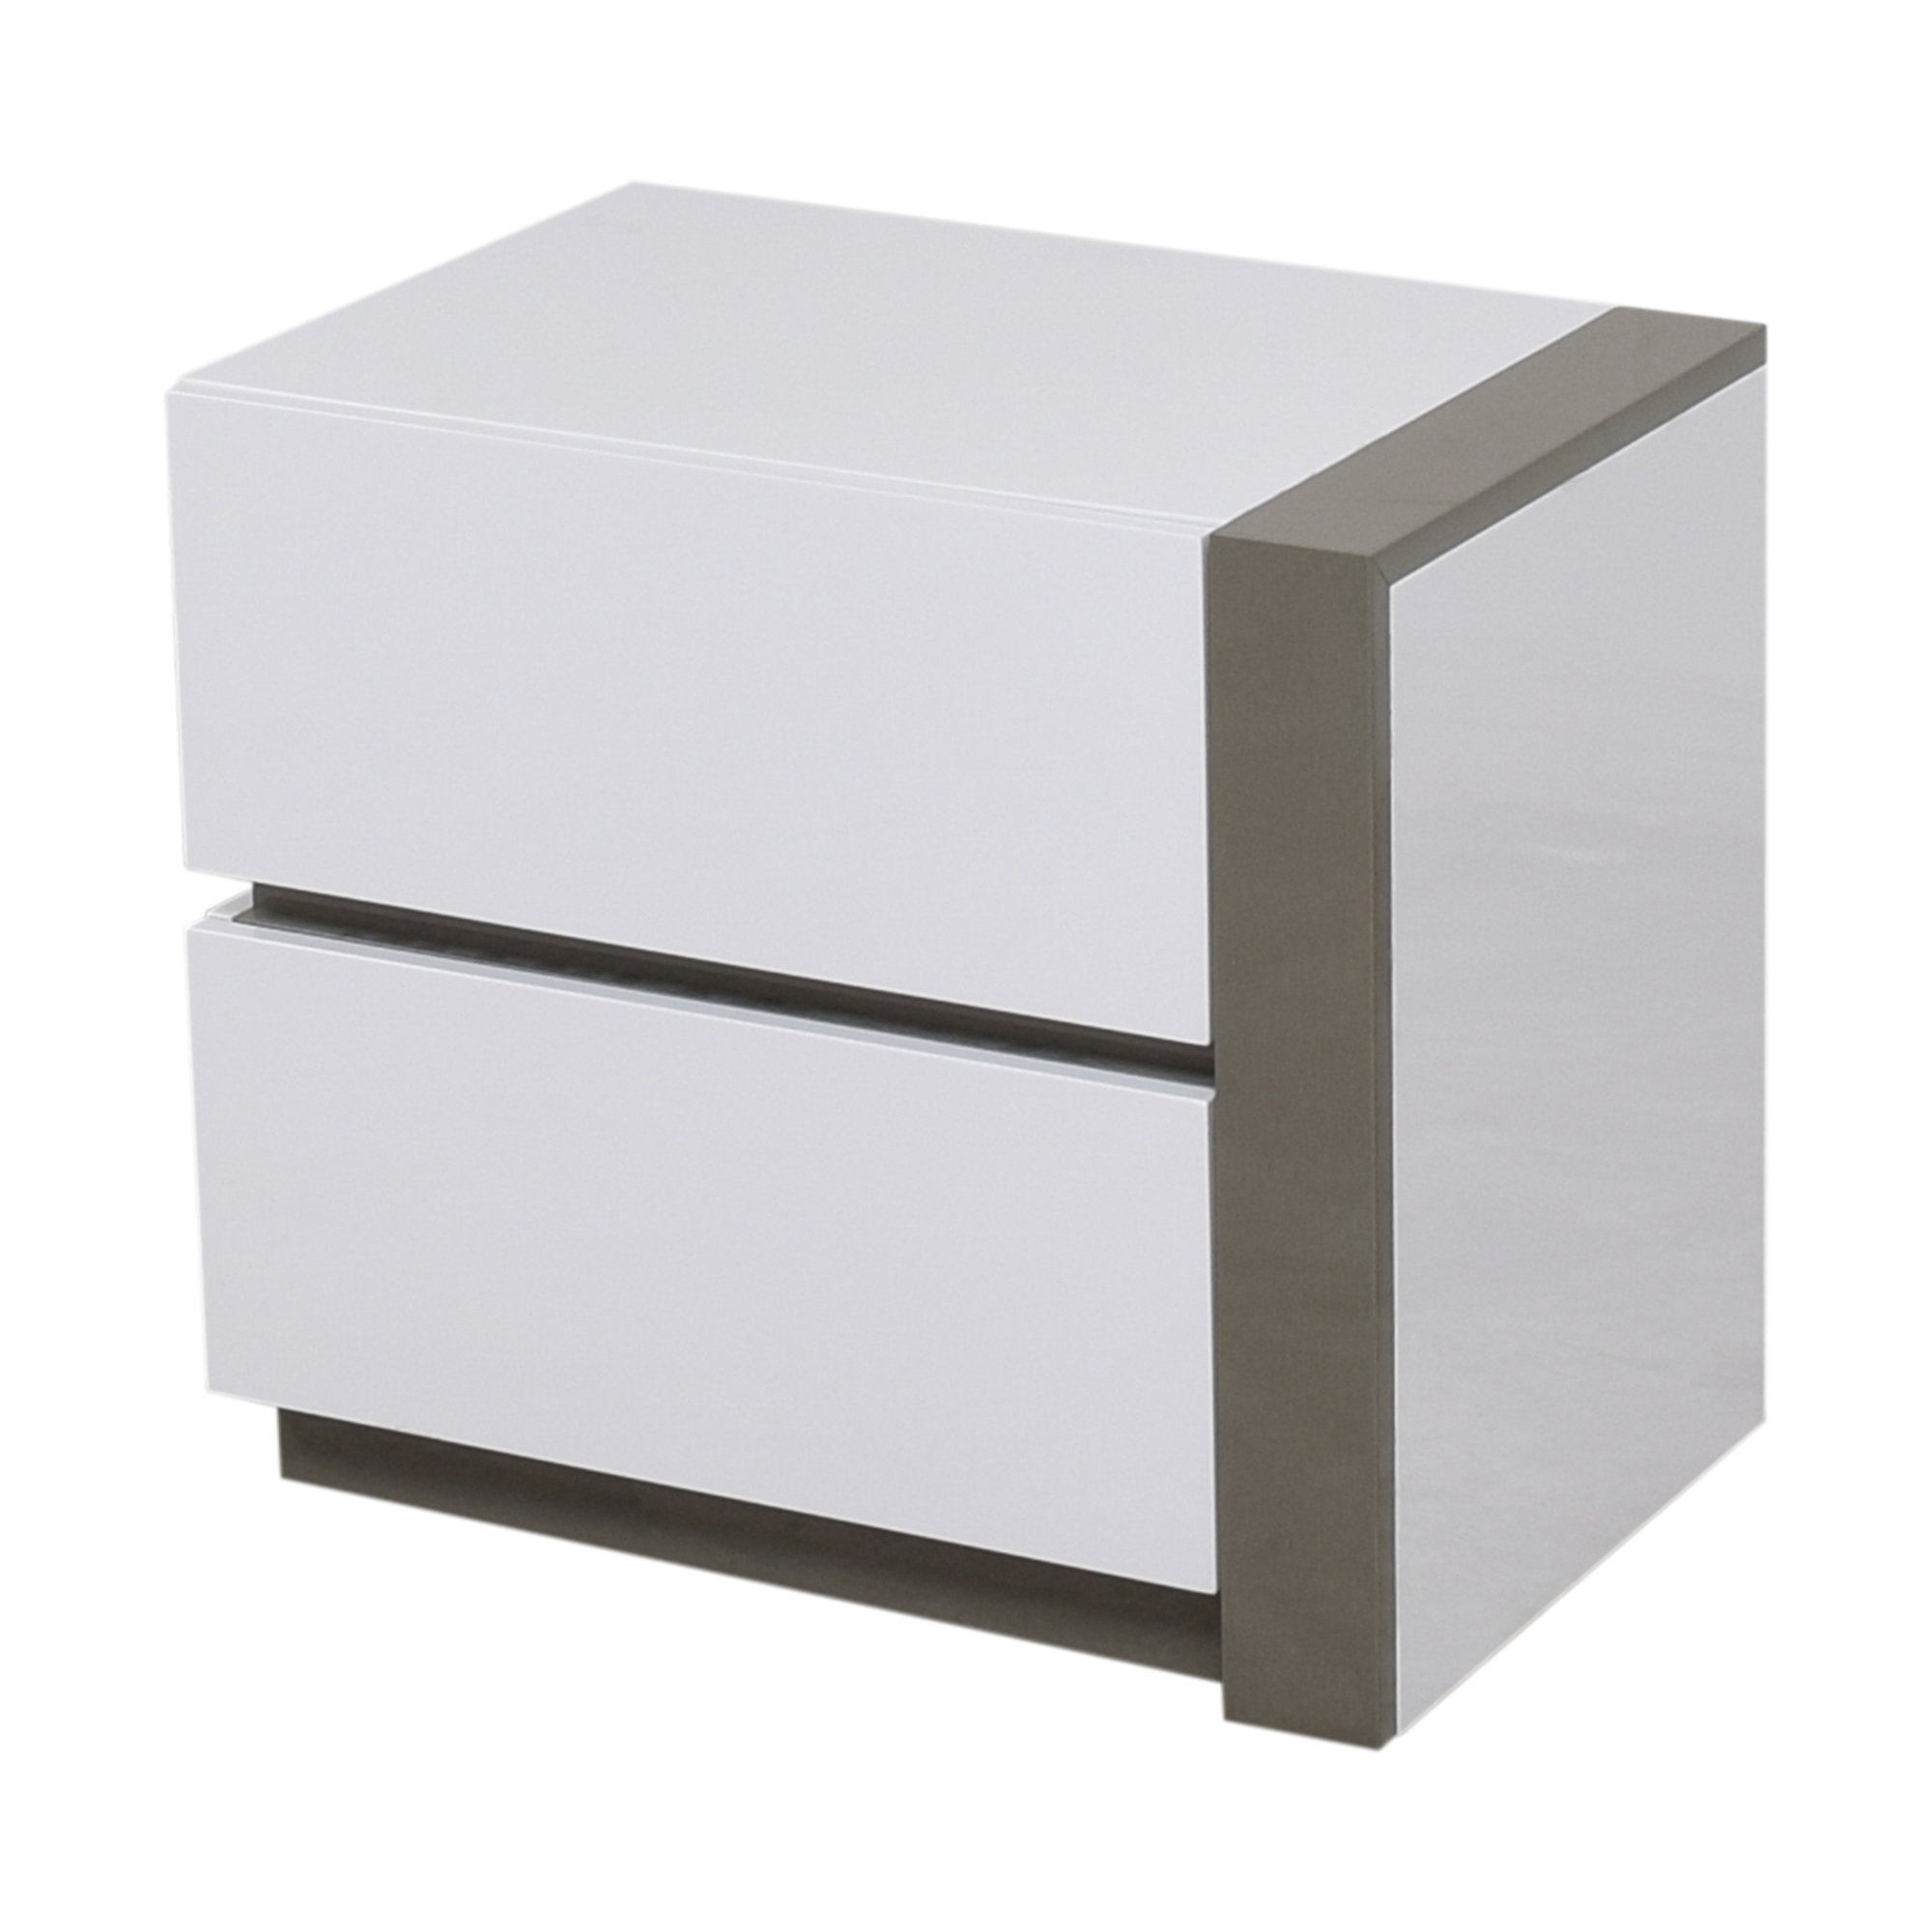 Chintaly Imports Manila Right Nightstand Chintaly Imports